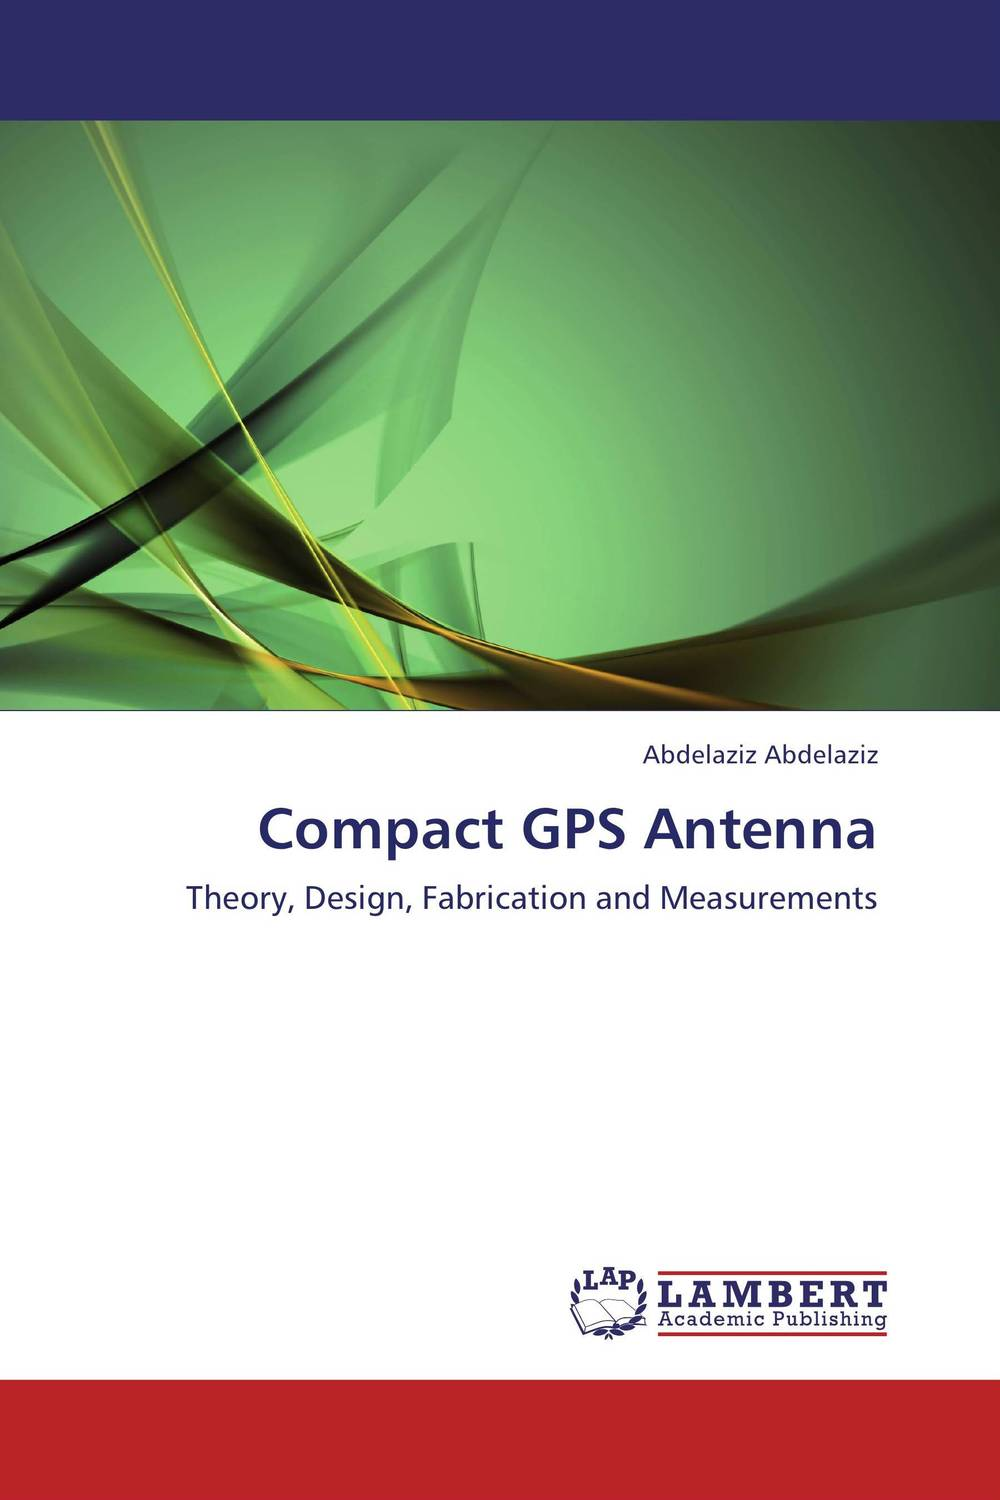 Compact GPS Antenna soft stick with a soft rod antenna a00912 gps antenna is suitable for gps